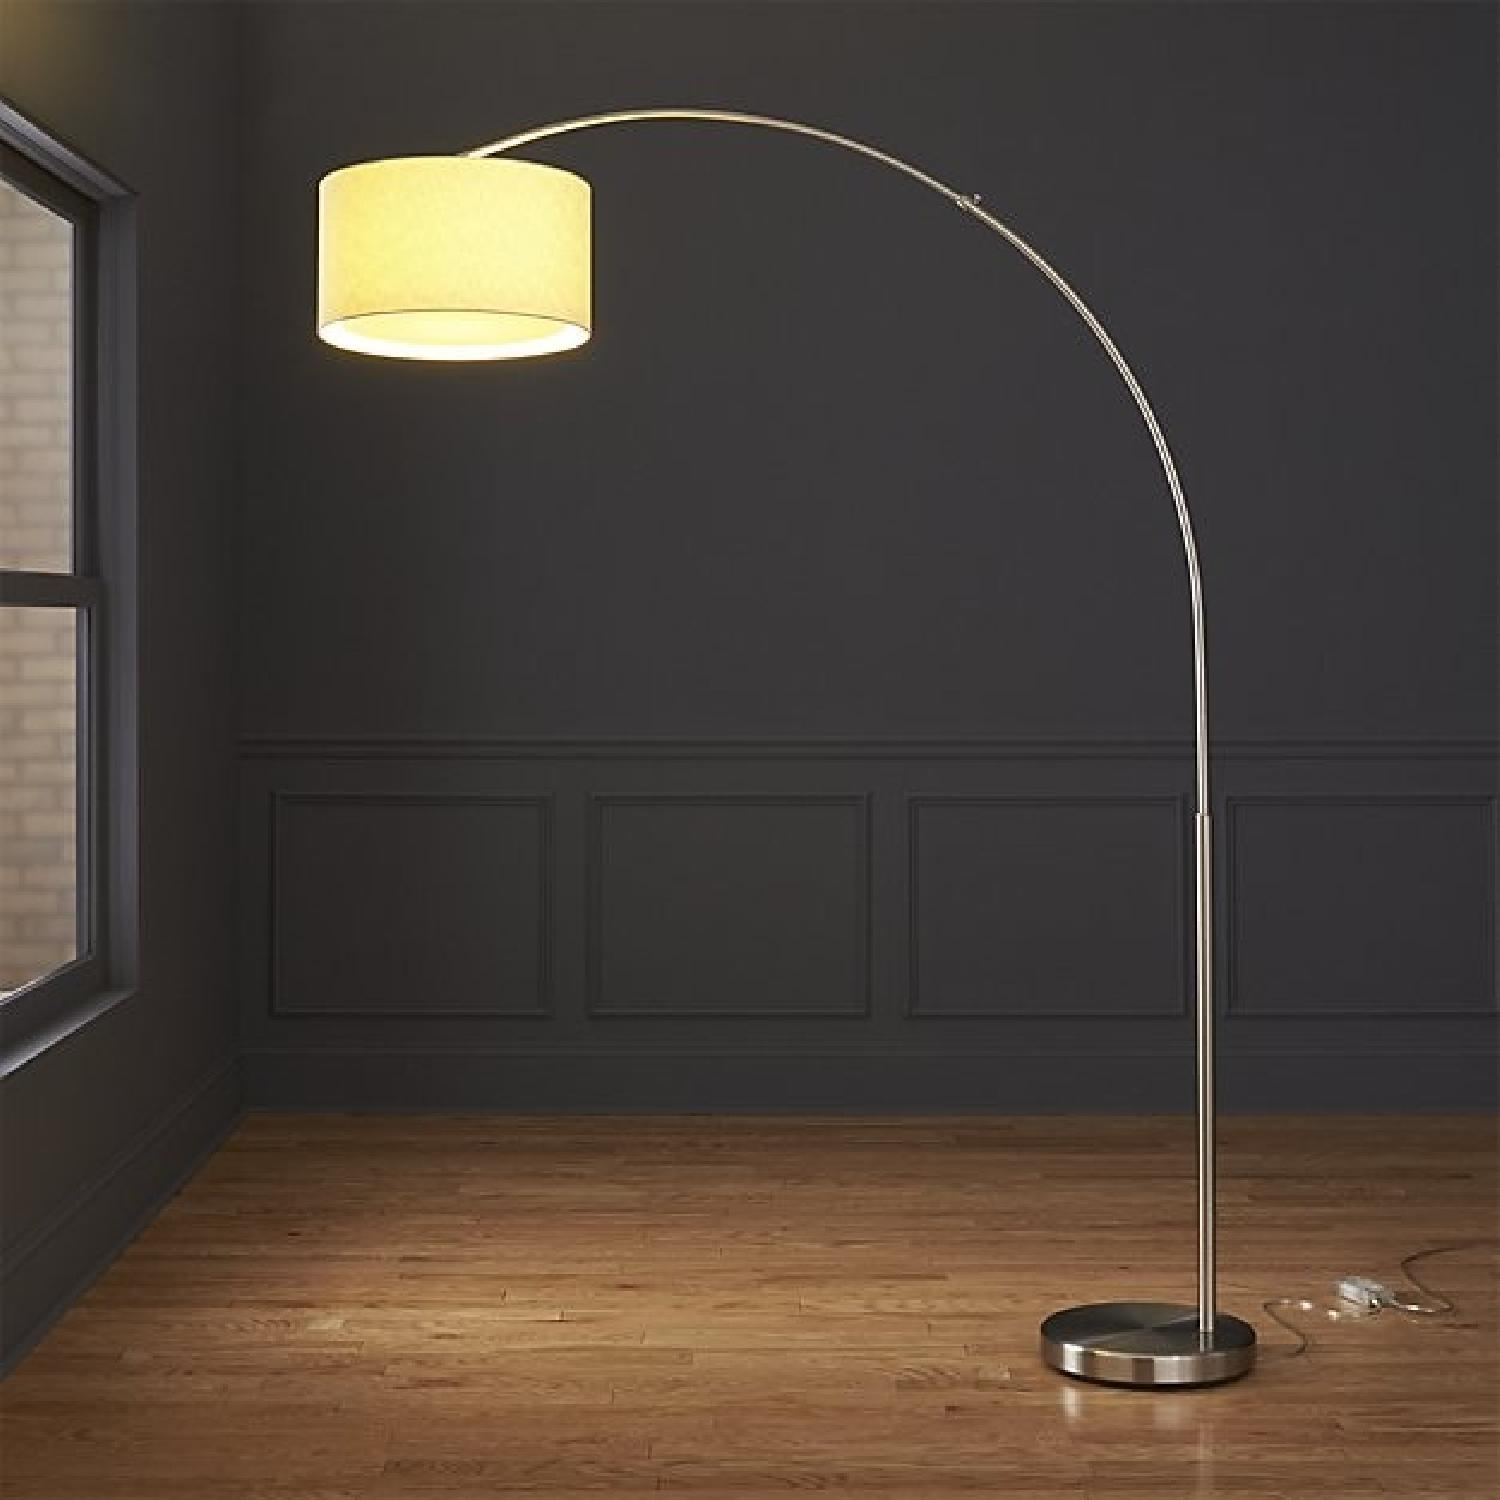 CB2 Big Dipper Arc Brushed Nickel Floor Lamp - AptDeco